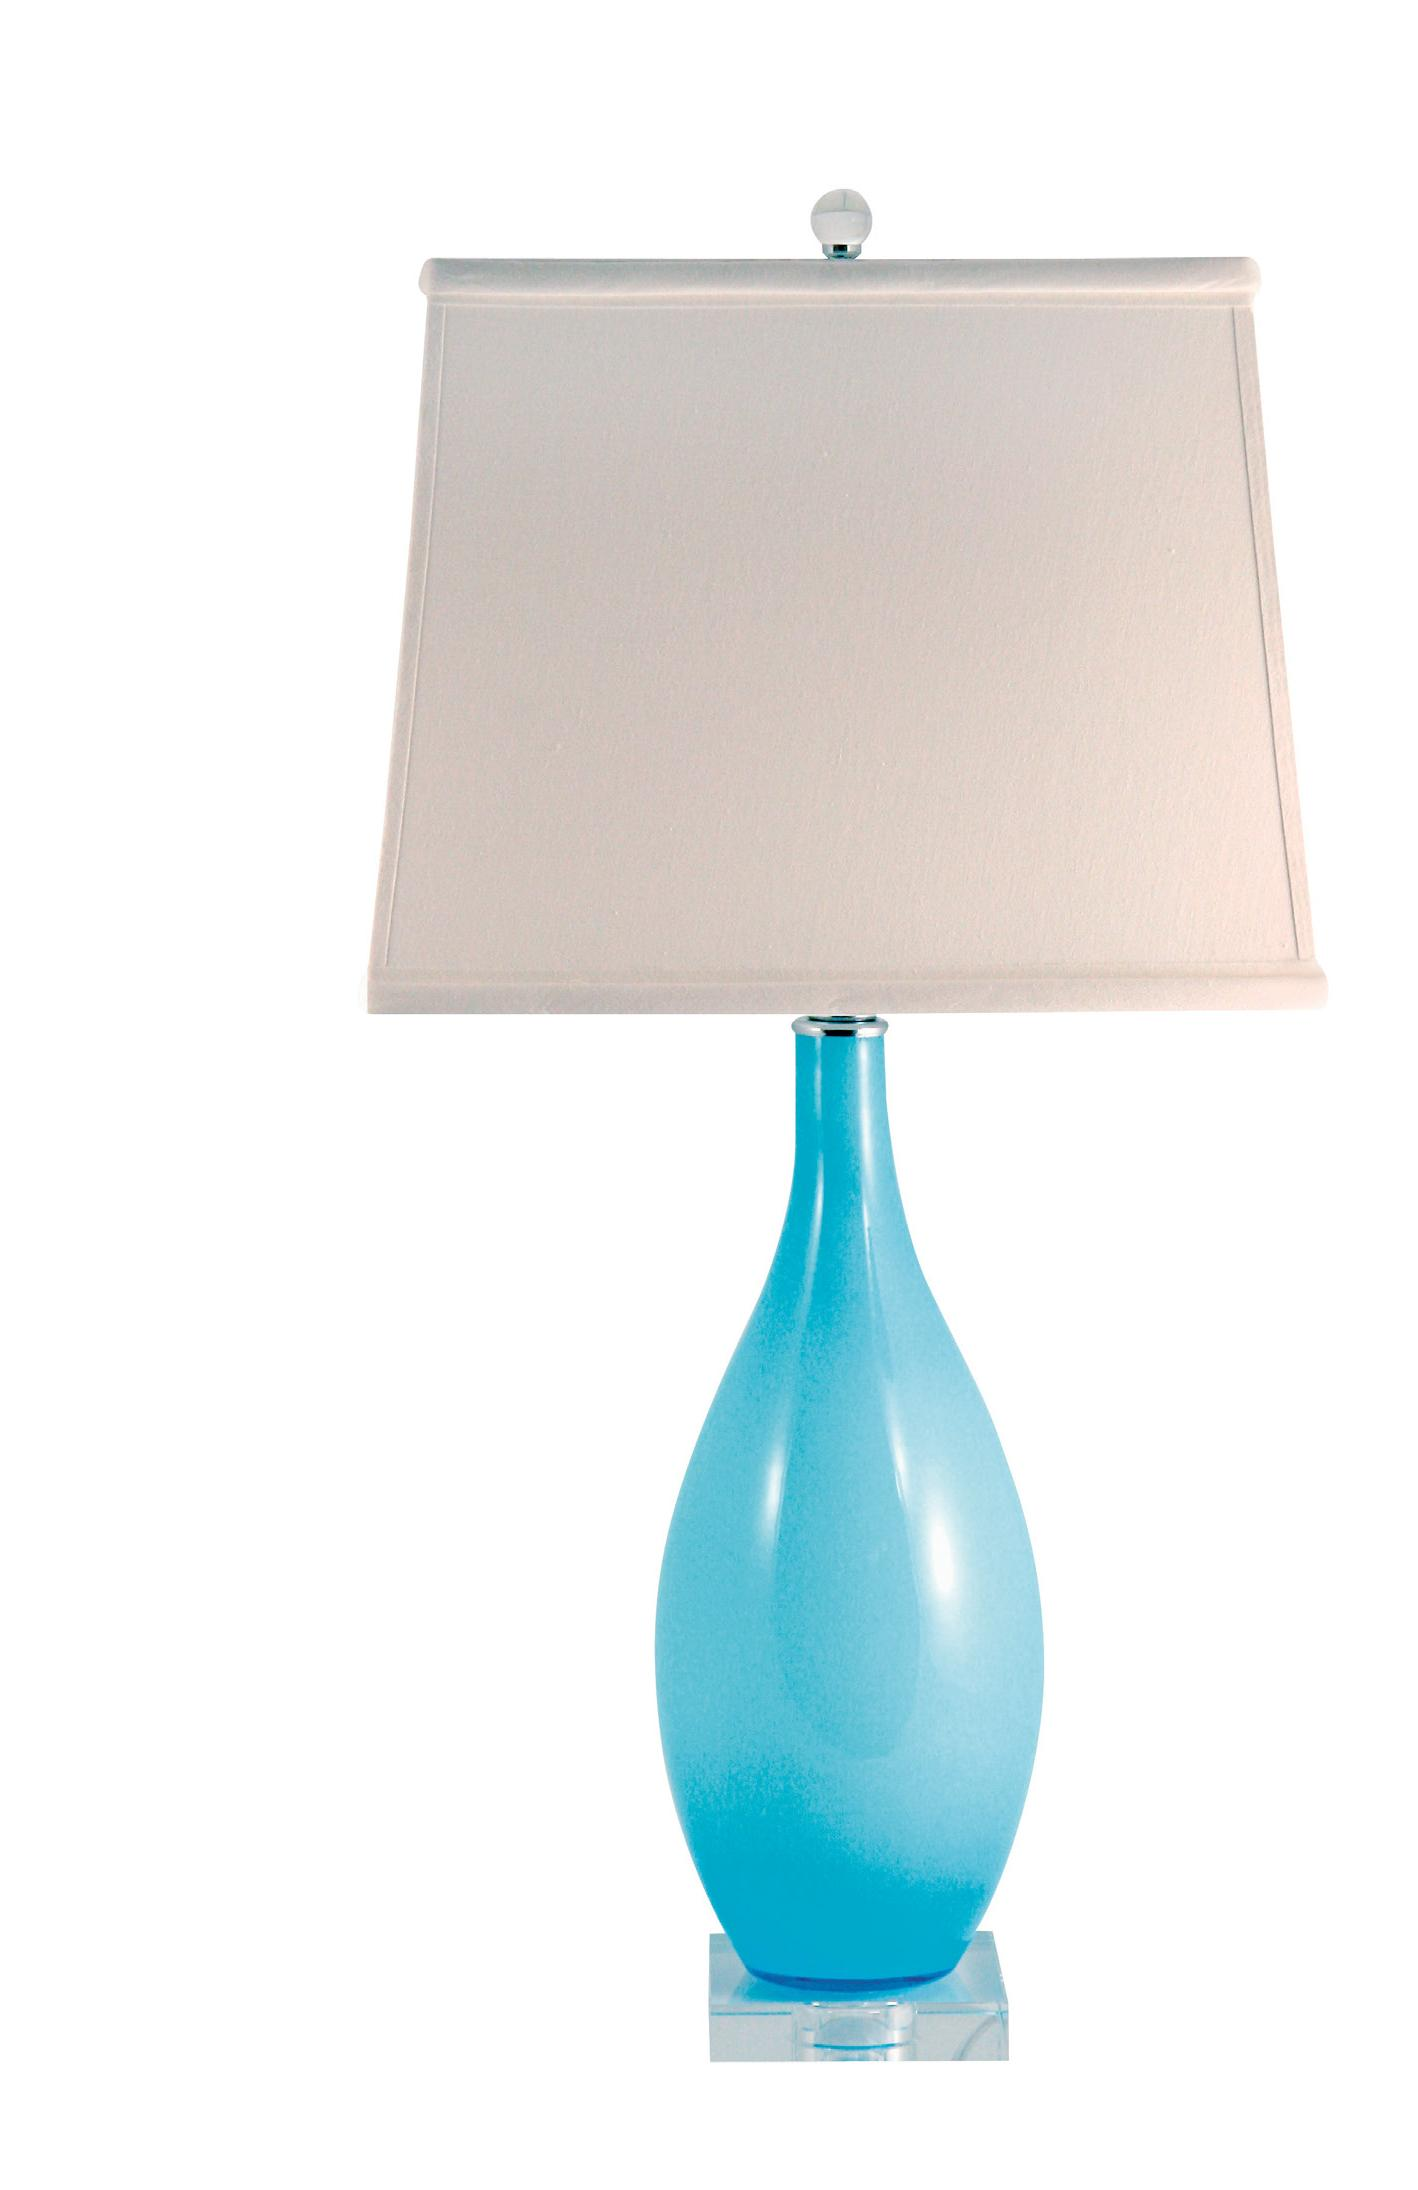 aqua blue glass table lamp table lamps 1001shops co. Black Bedroom Furniture Sets. Home Design Ideas